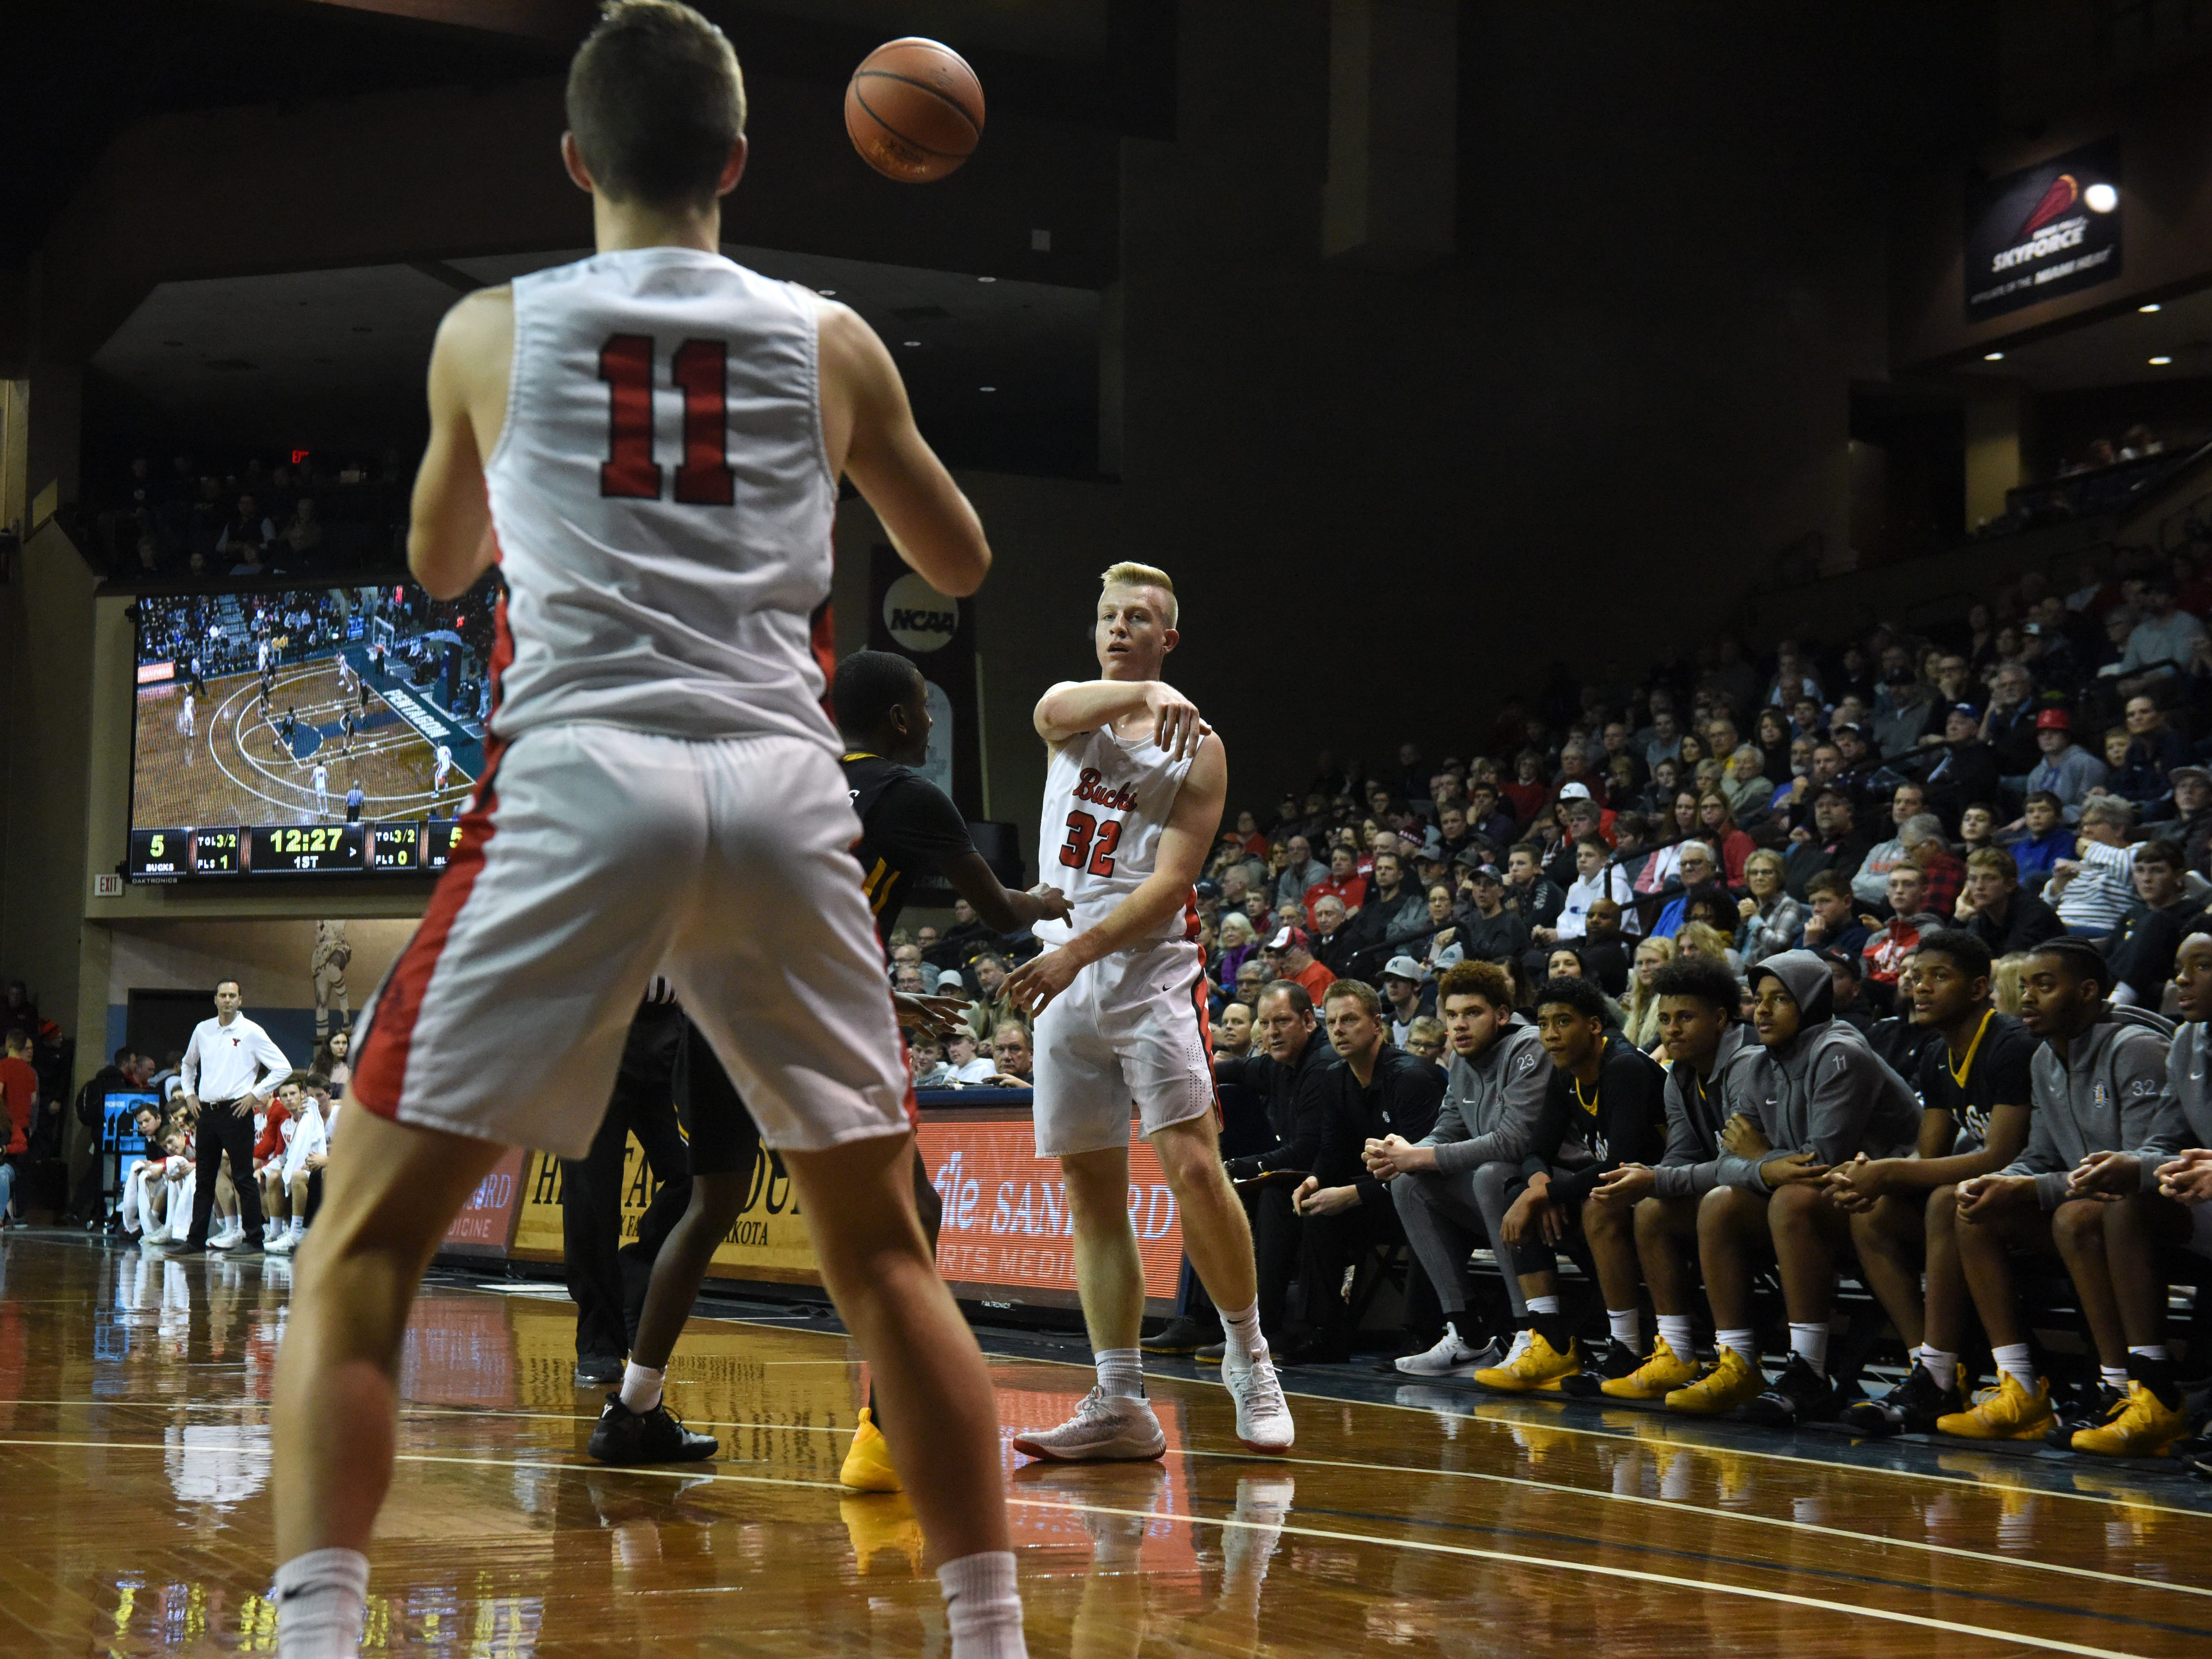 Yankton's Matthew Mors (32) passes the ball to Yankton's Cooper Cornemann (11) during a game against DeLaSalle at the Hoop City Classic at the Sanford Pentagon in Sioux Falls, S.D., Saturday, Dec. 29, 2018.